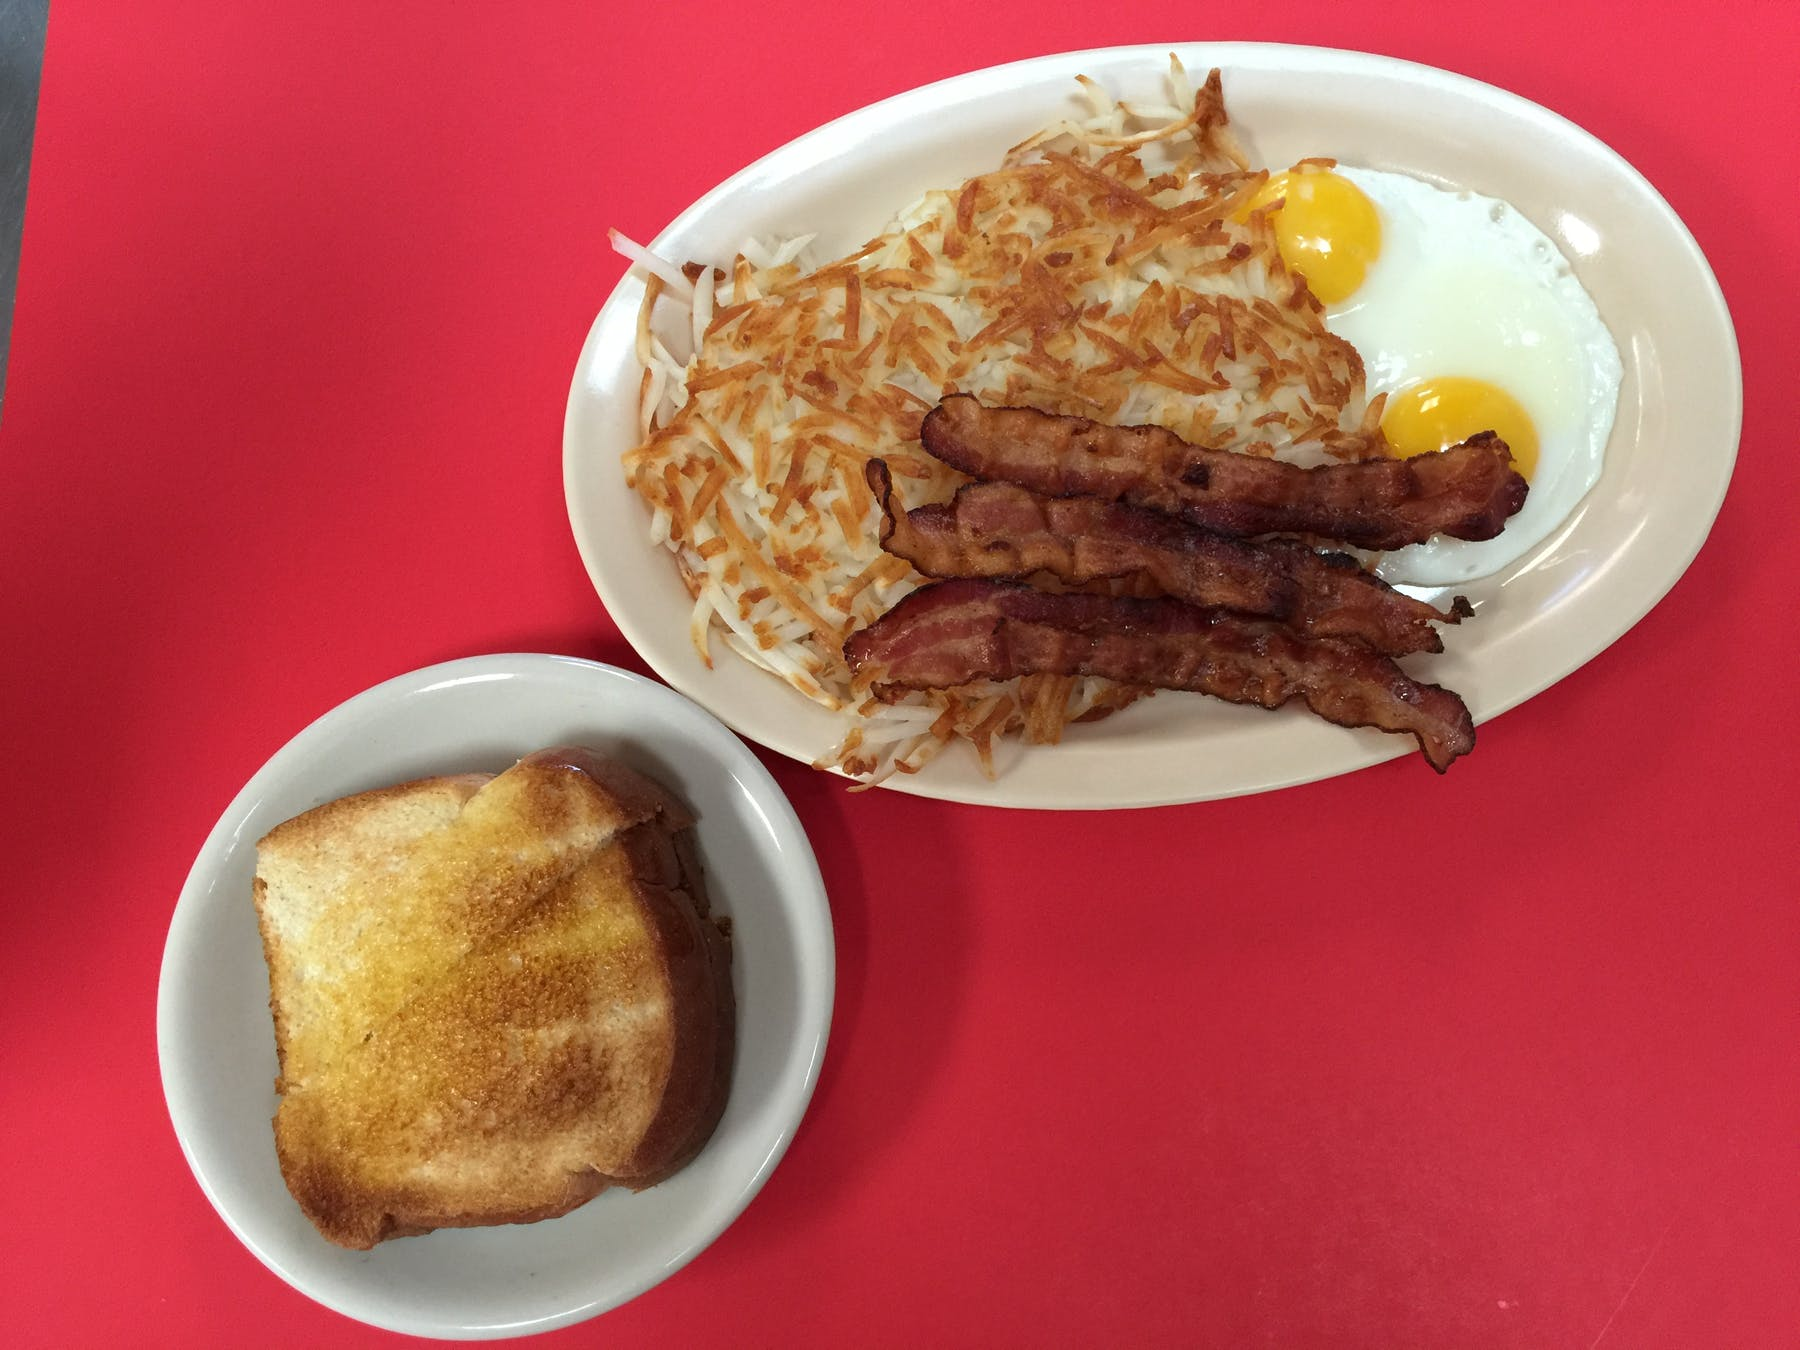 toast, hash brown, bacon and eggs